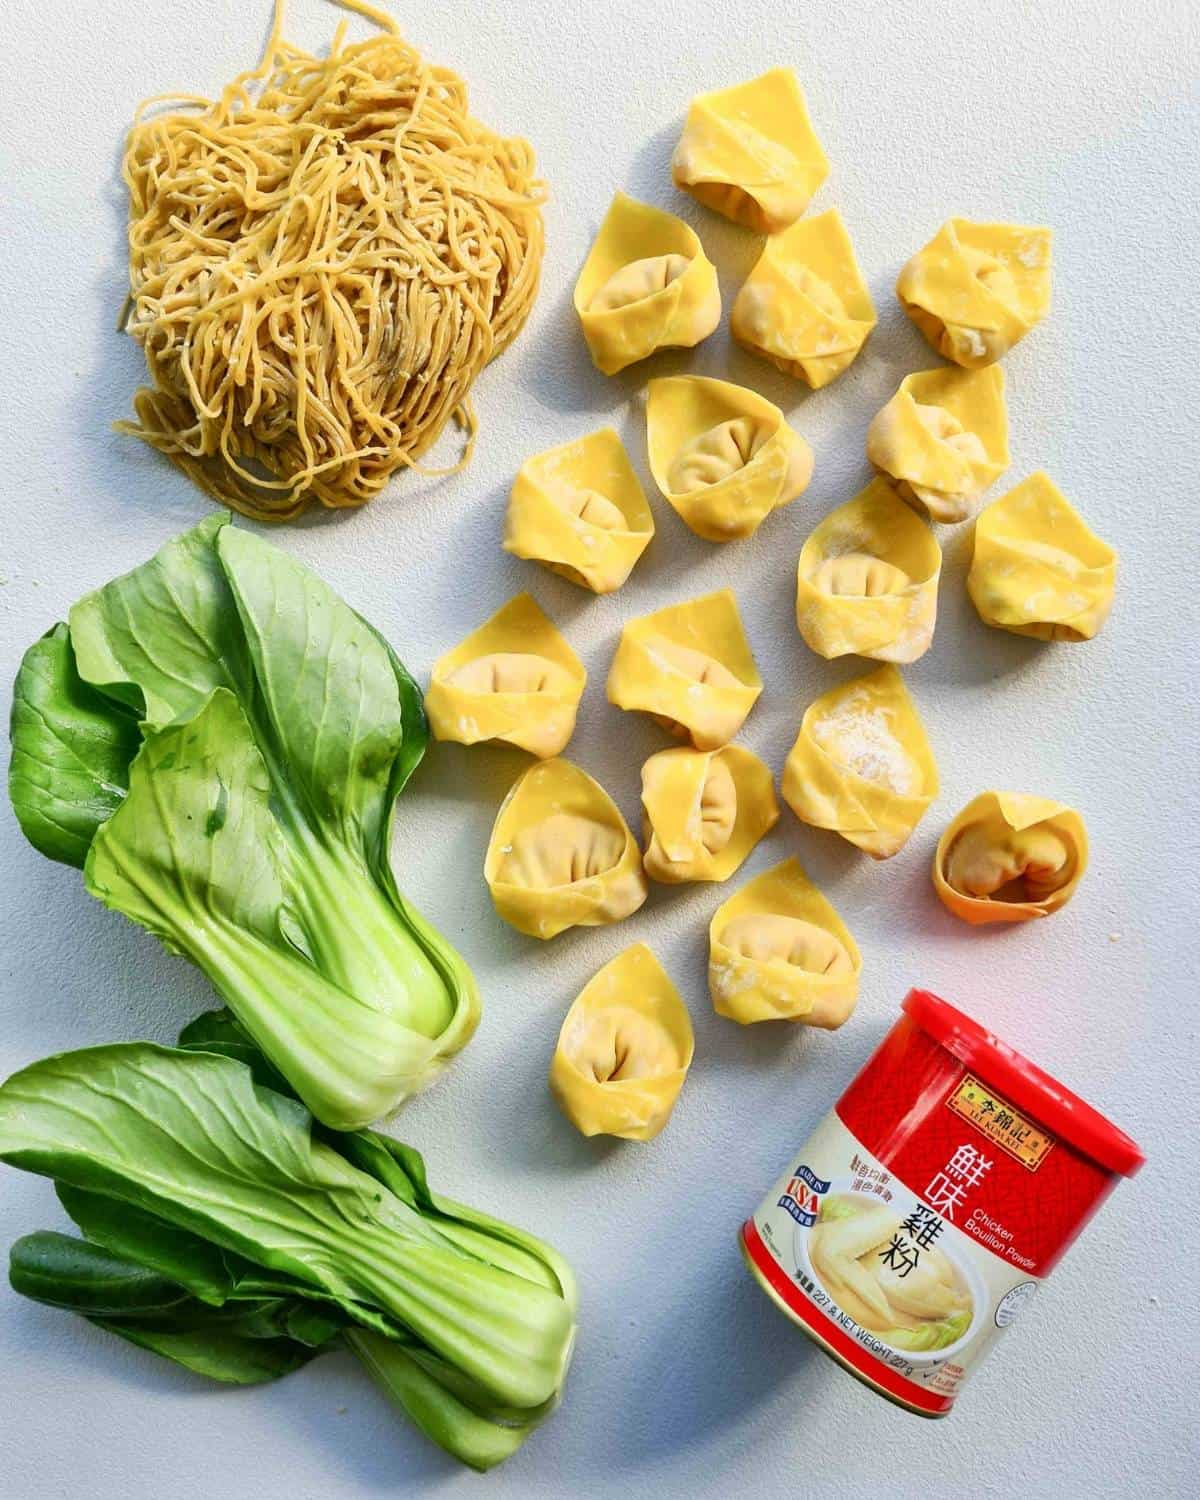 Folded wontons, egg noodles and bok choy ready for cooking